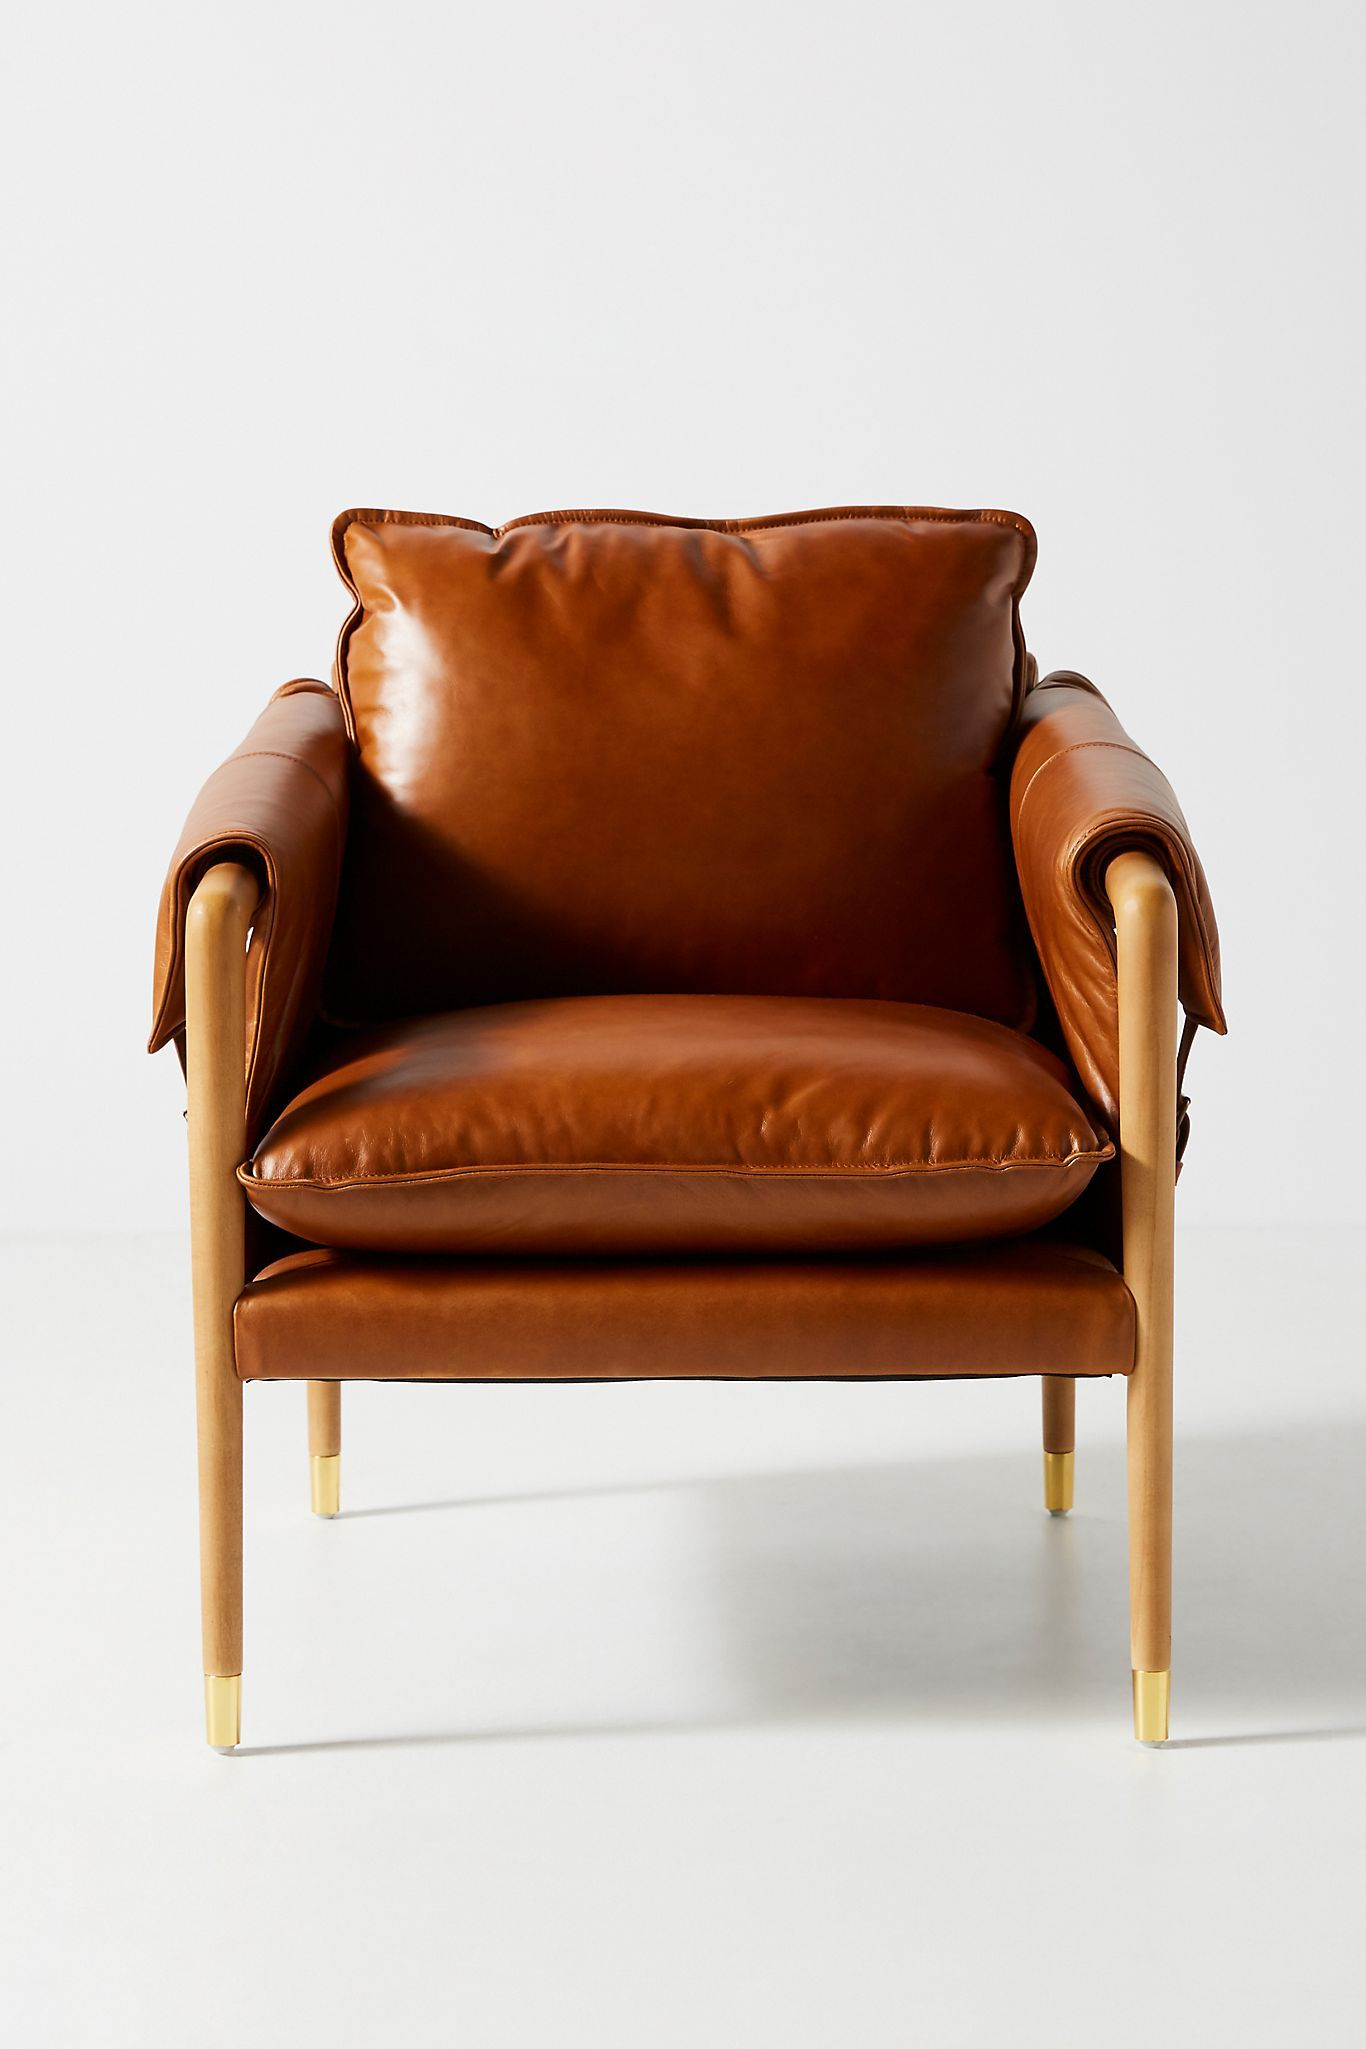 Havana Leather Chair In 2020 Leather Chair Brown Leather Chairs Leather Lounge